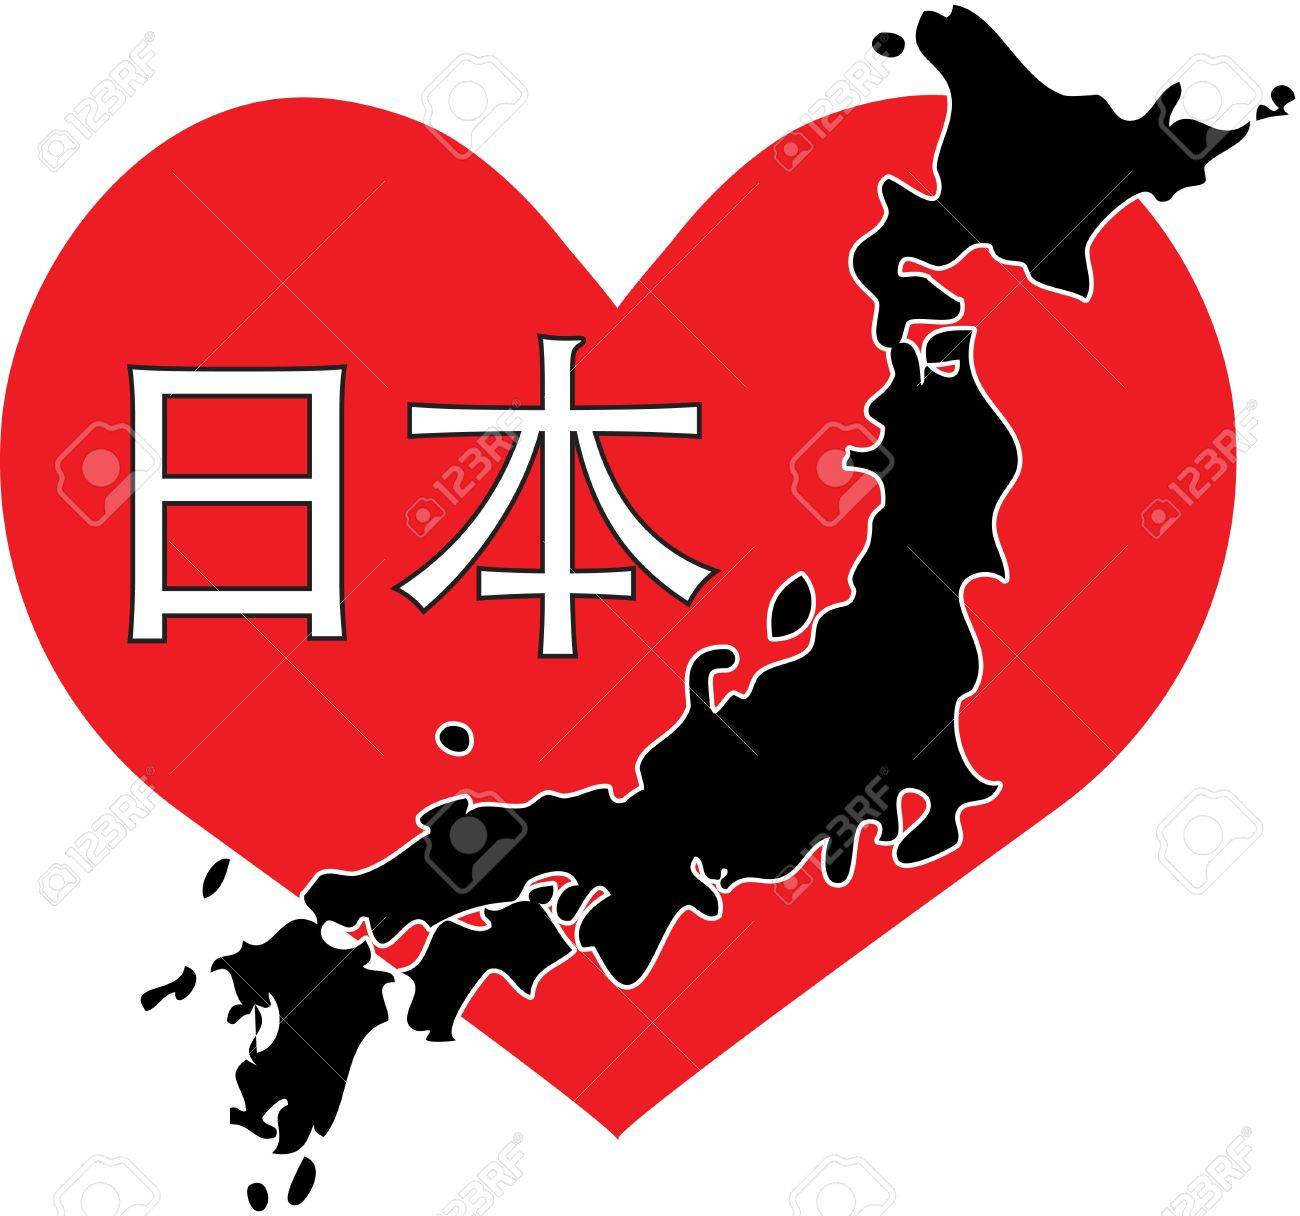 A Red Heart With A Map Of Japan Across It And The Word JAPAN - Japan map red